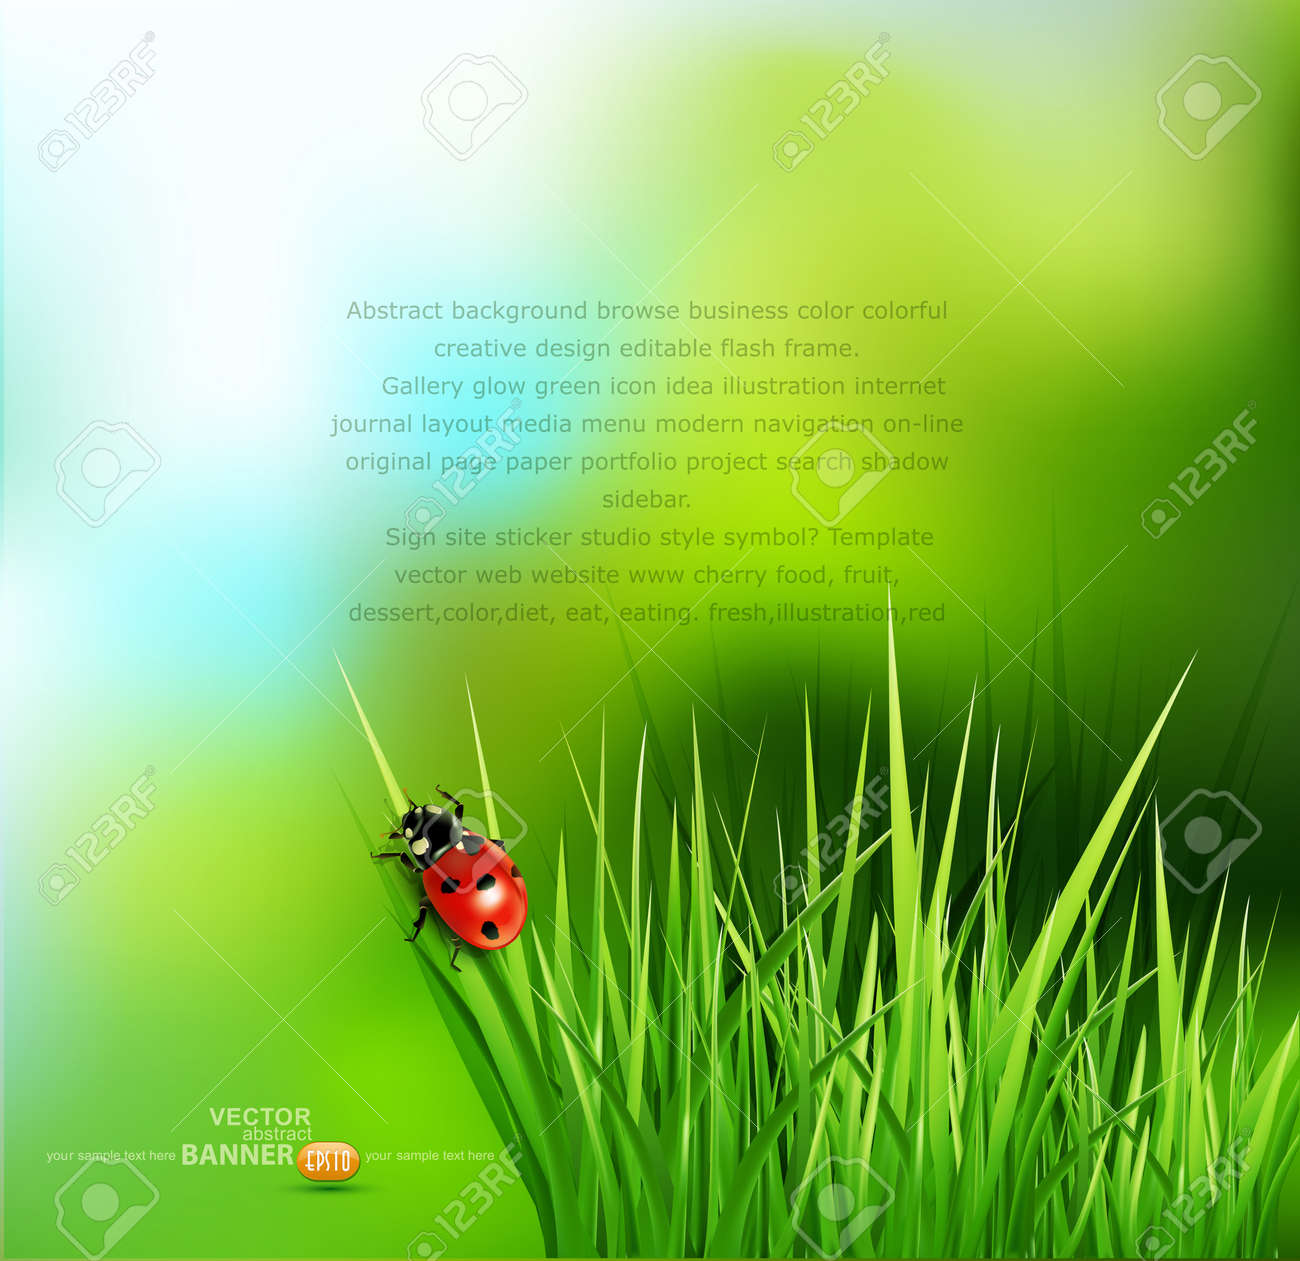 vector background with green grass and ladybug - 17336759